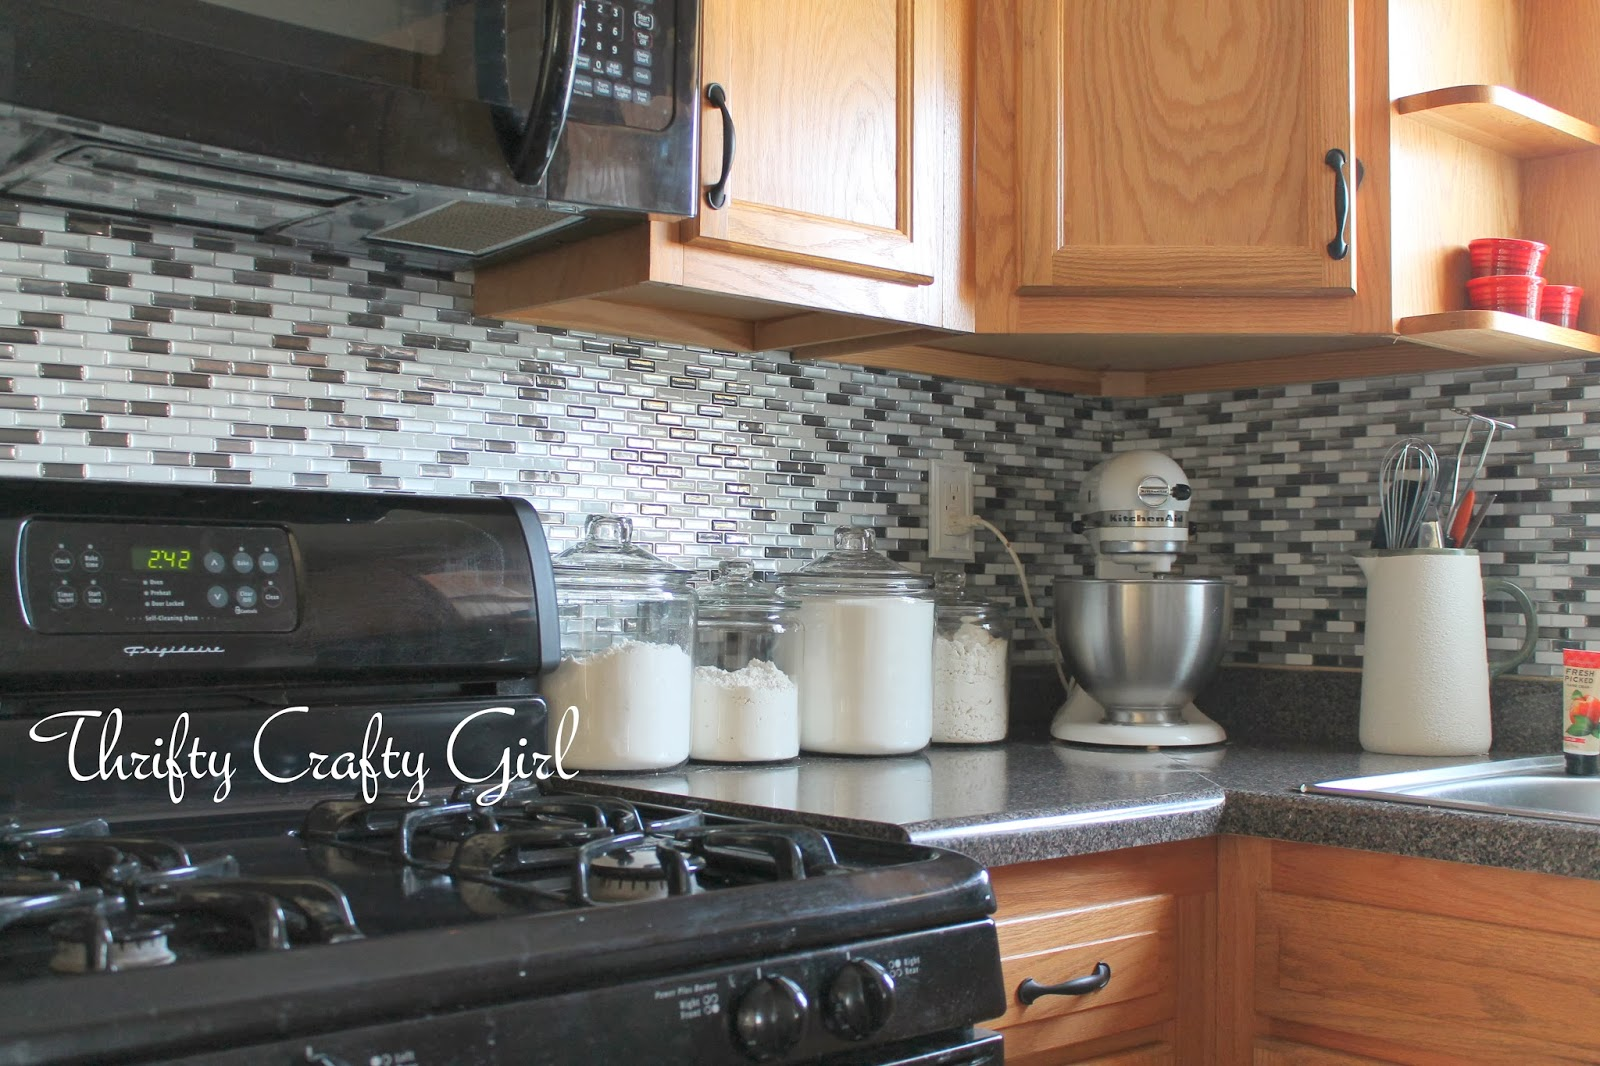 Diy Kitchen Tile Backsplash Thrifty Crafty Girl Easy Kitchen Backsplash With Smart Tiles